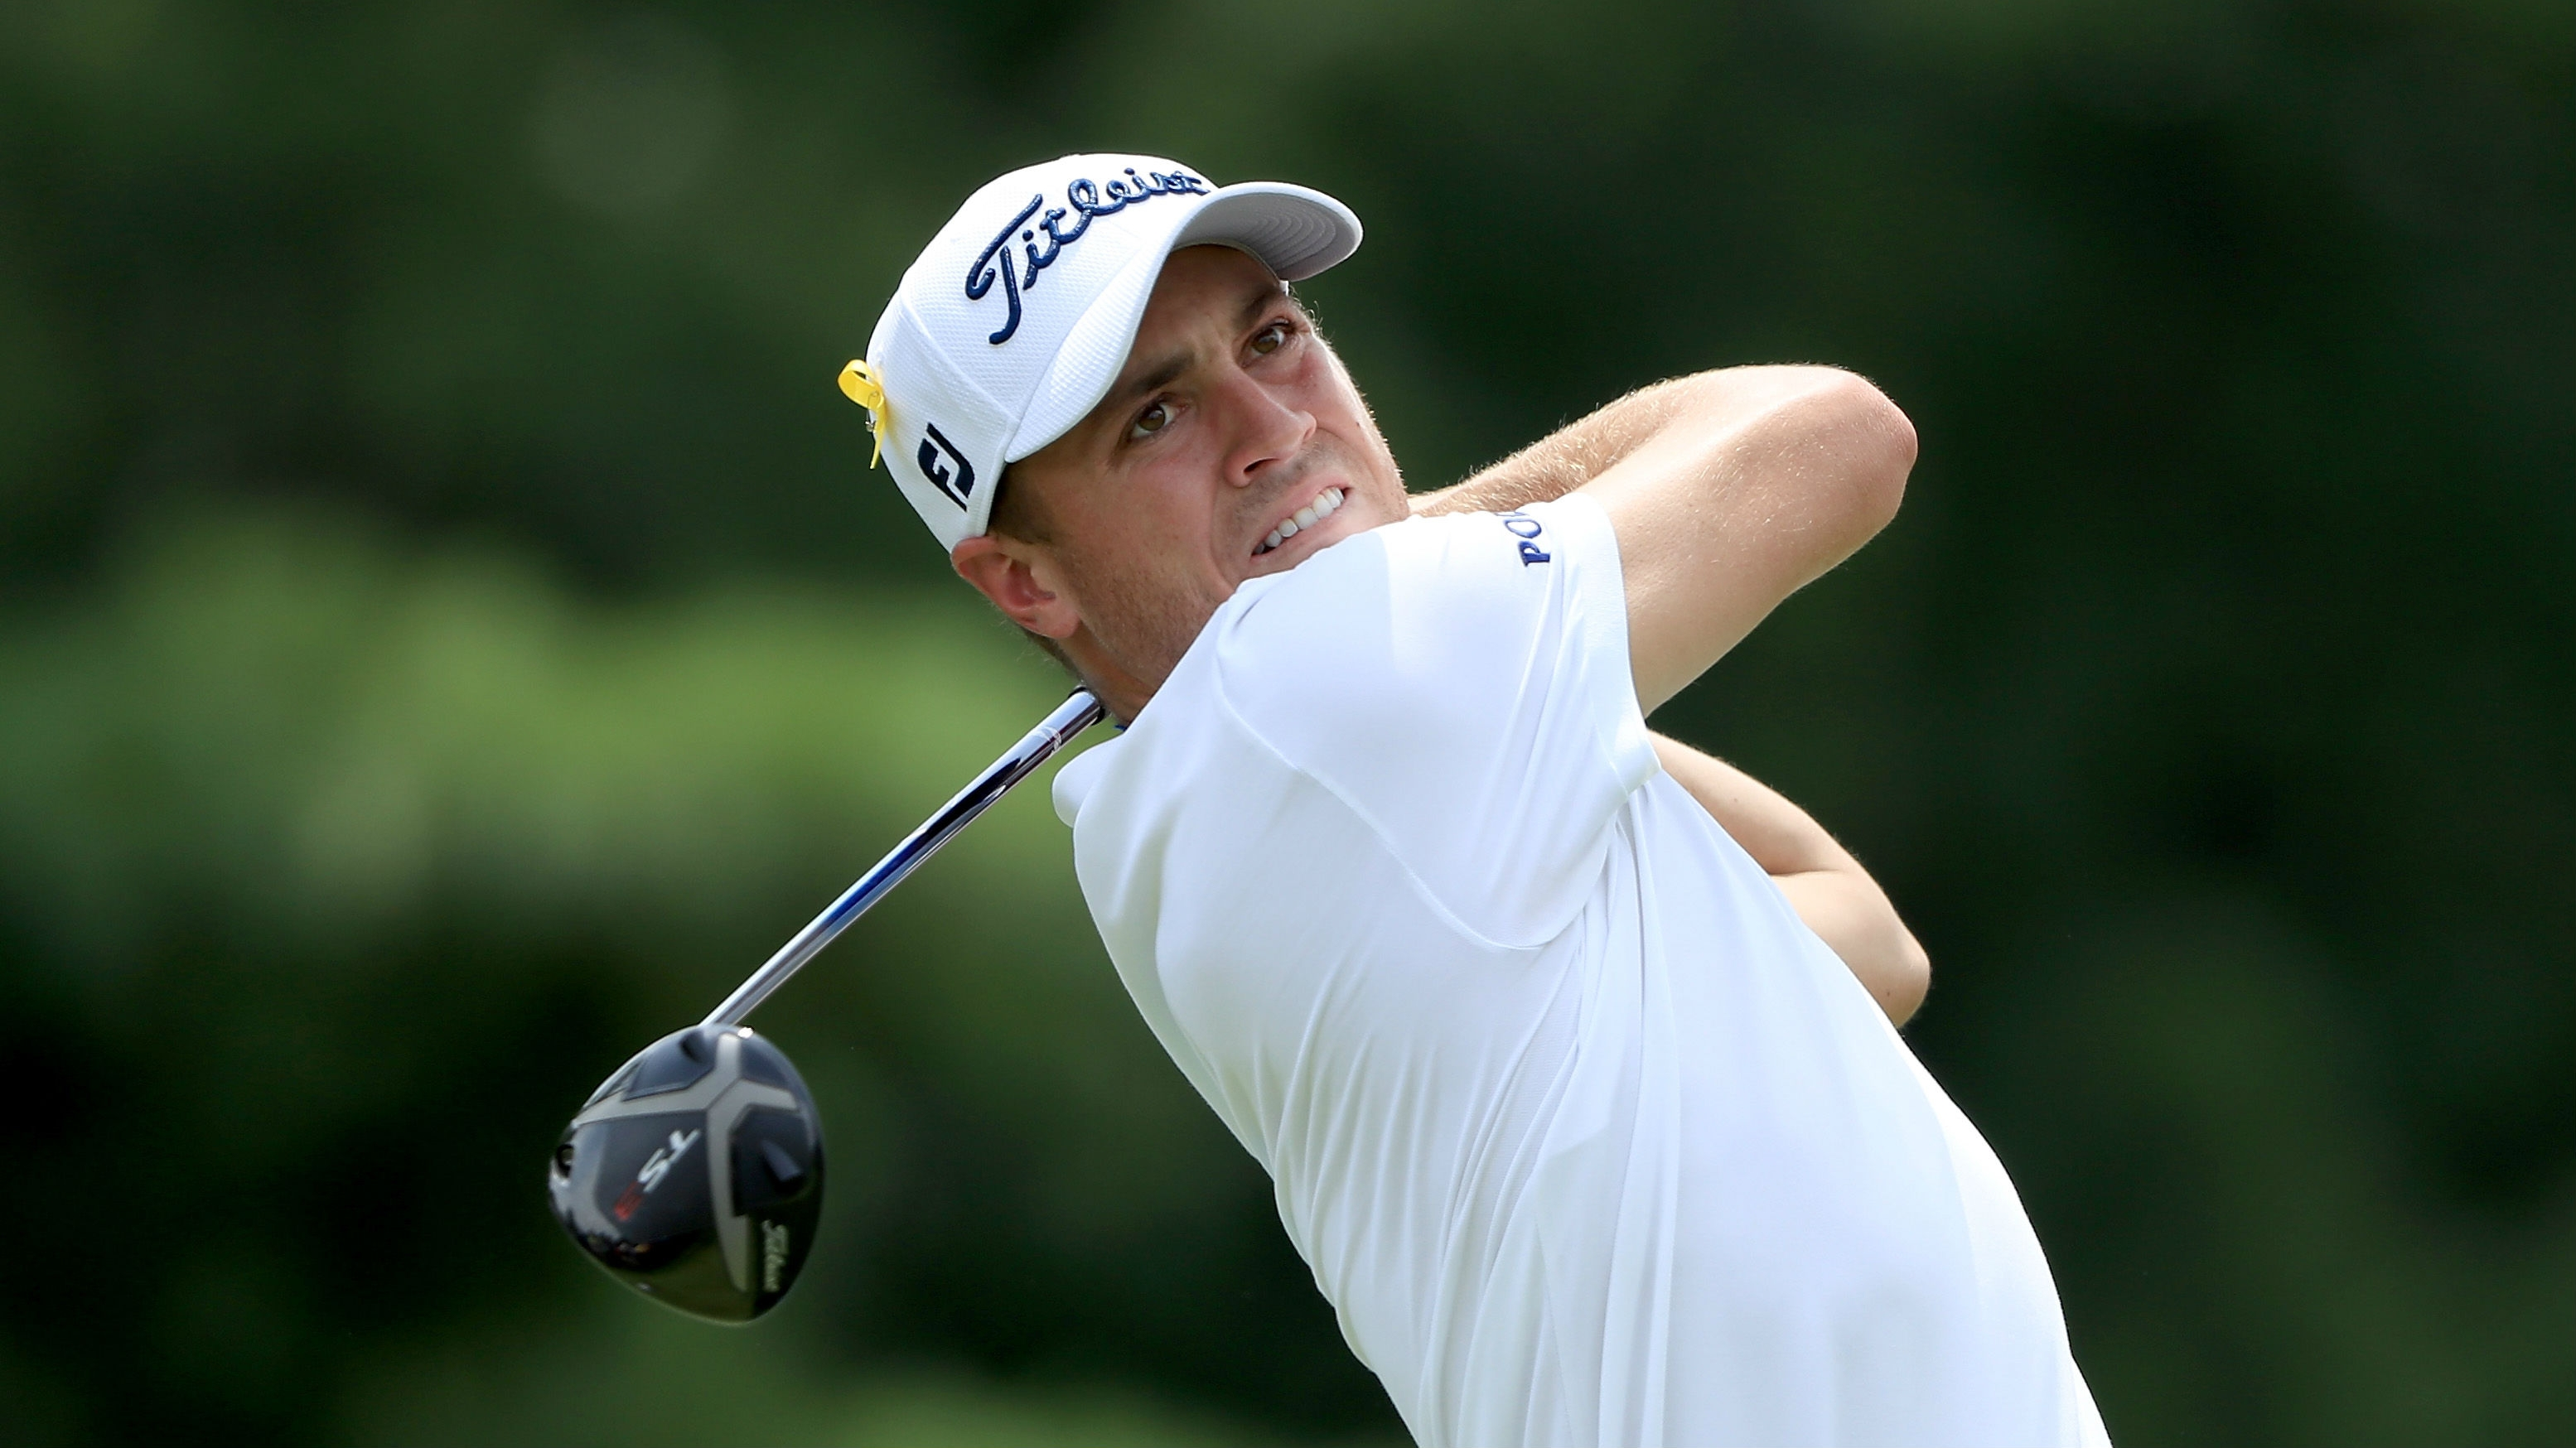 PGA Championship 2018 preview: Justin Thomas ready to defend title after win at Firestone